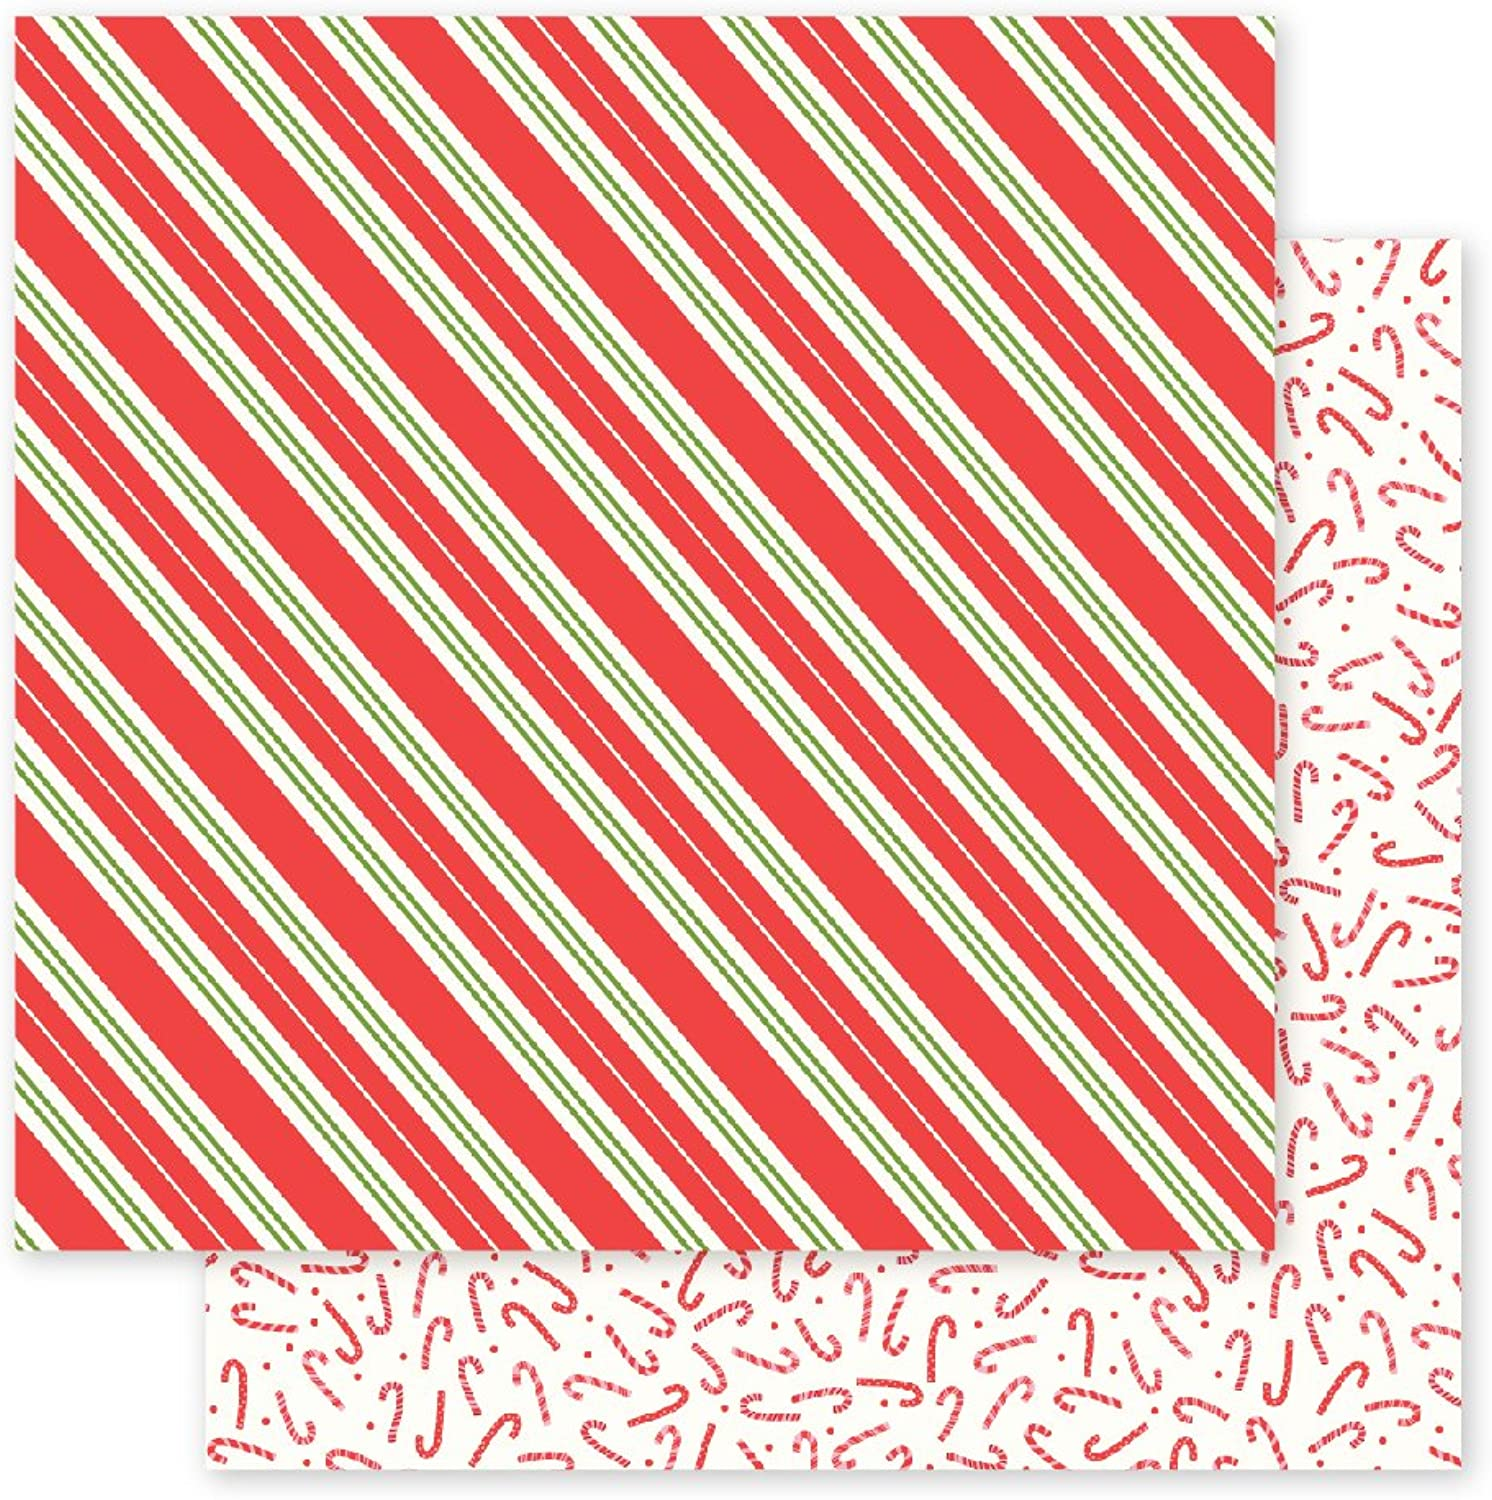 American Crafts 733164 Candy Stripes Pebbles Holly Jolly 25 Musterpapier Musterpapier Musterpapier Candy-Stripes 30 x 30 cm, 25 Stück B01LPIXSO0 | Exquisite (in) Verarbeitung